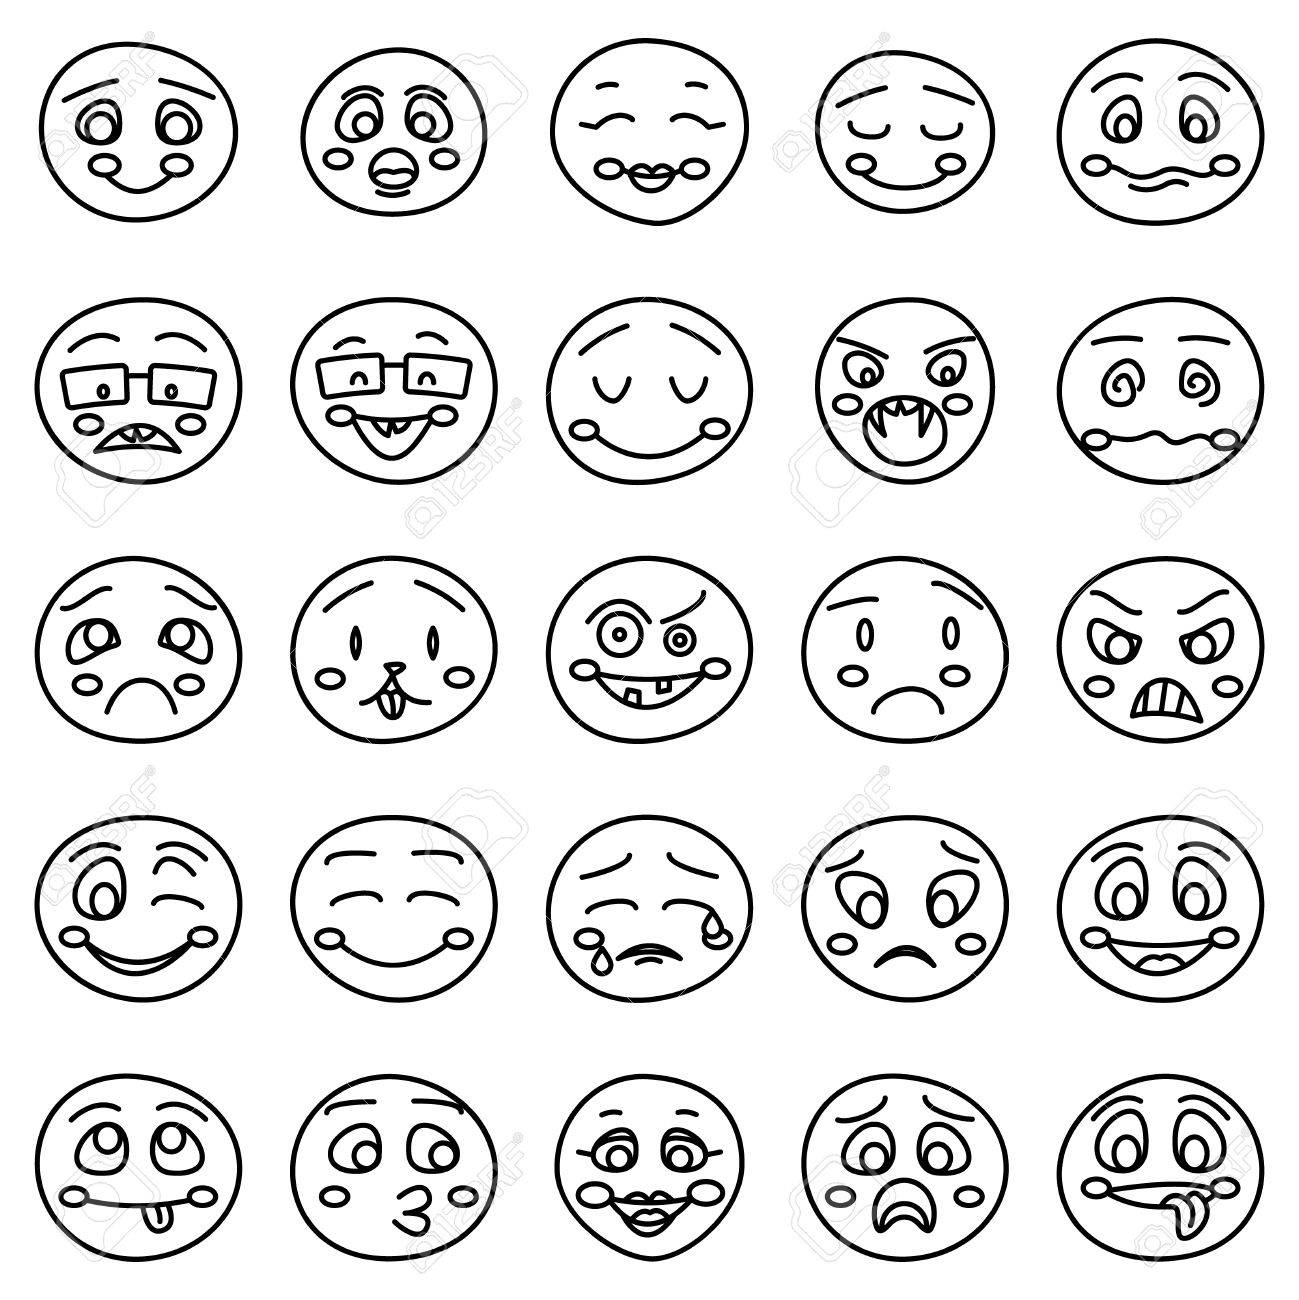 1299x1300 Hand Drawing Of Emoticons Or Vector Doodle Emotional Faces. Set